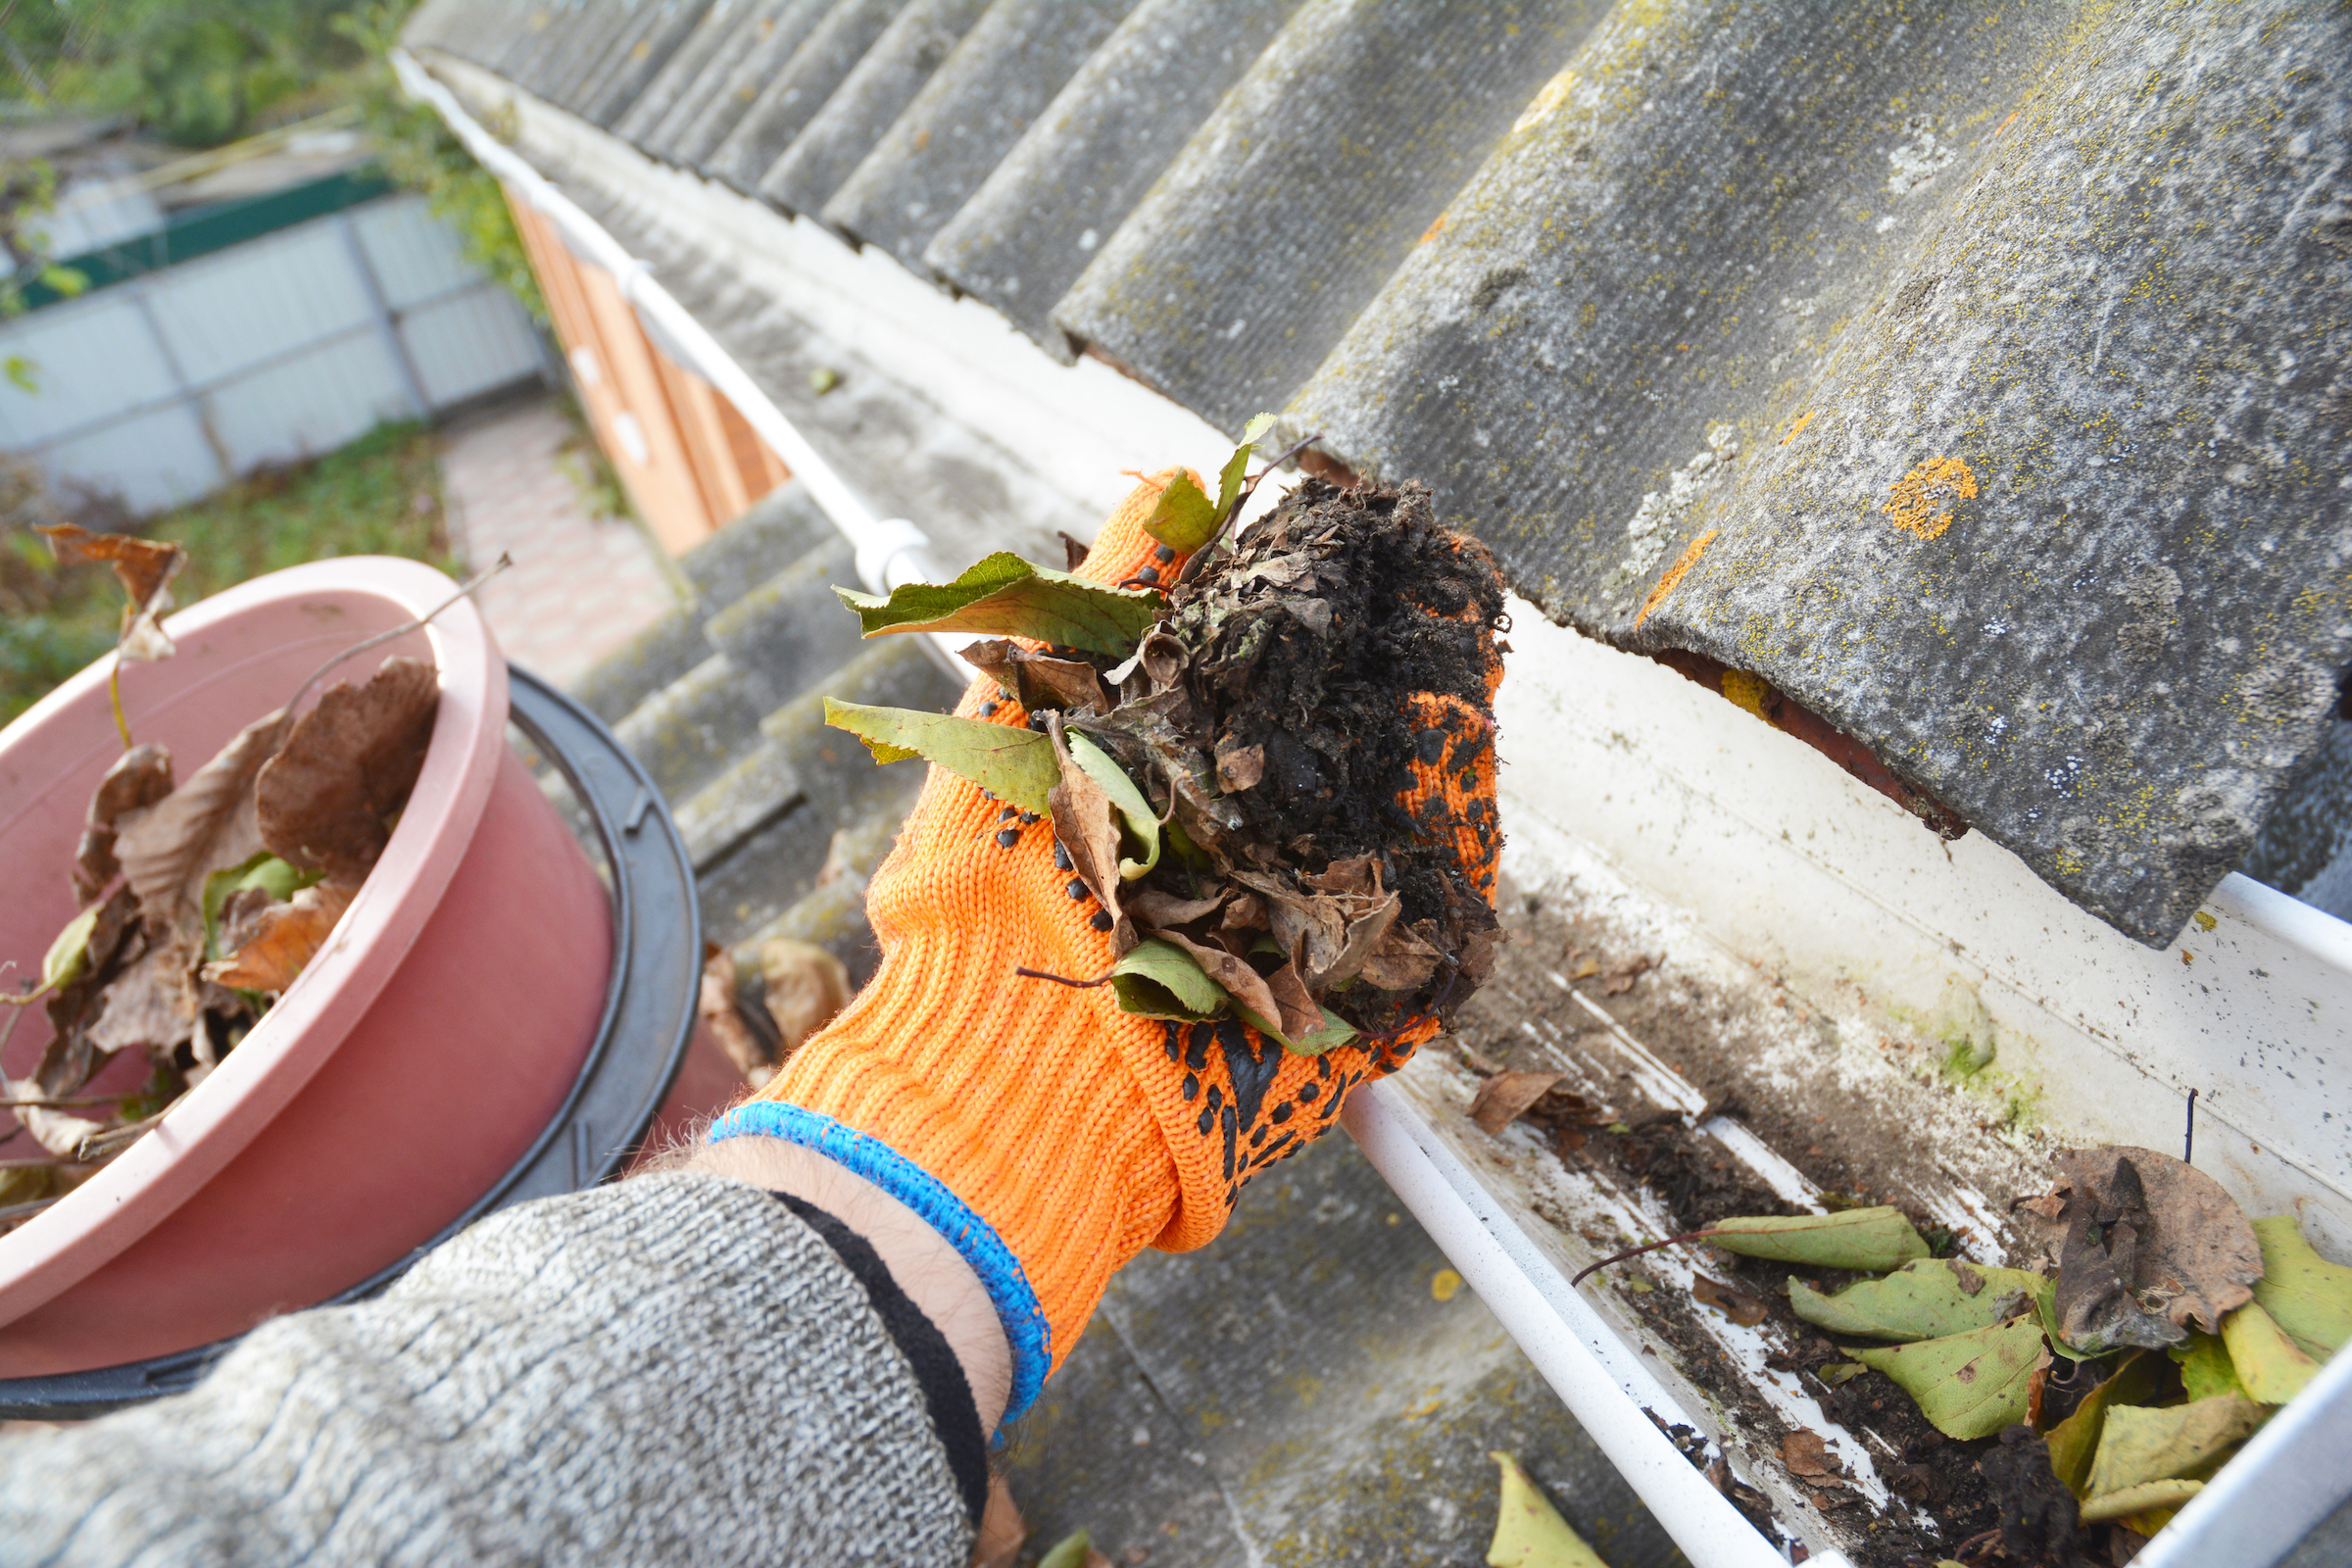 Gutter cleaning near me: what qualities to look for in a great company